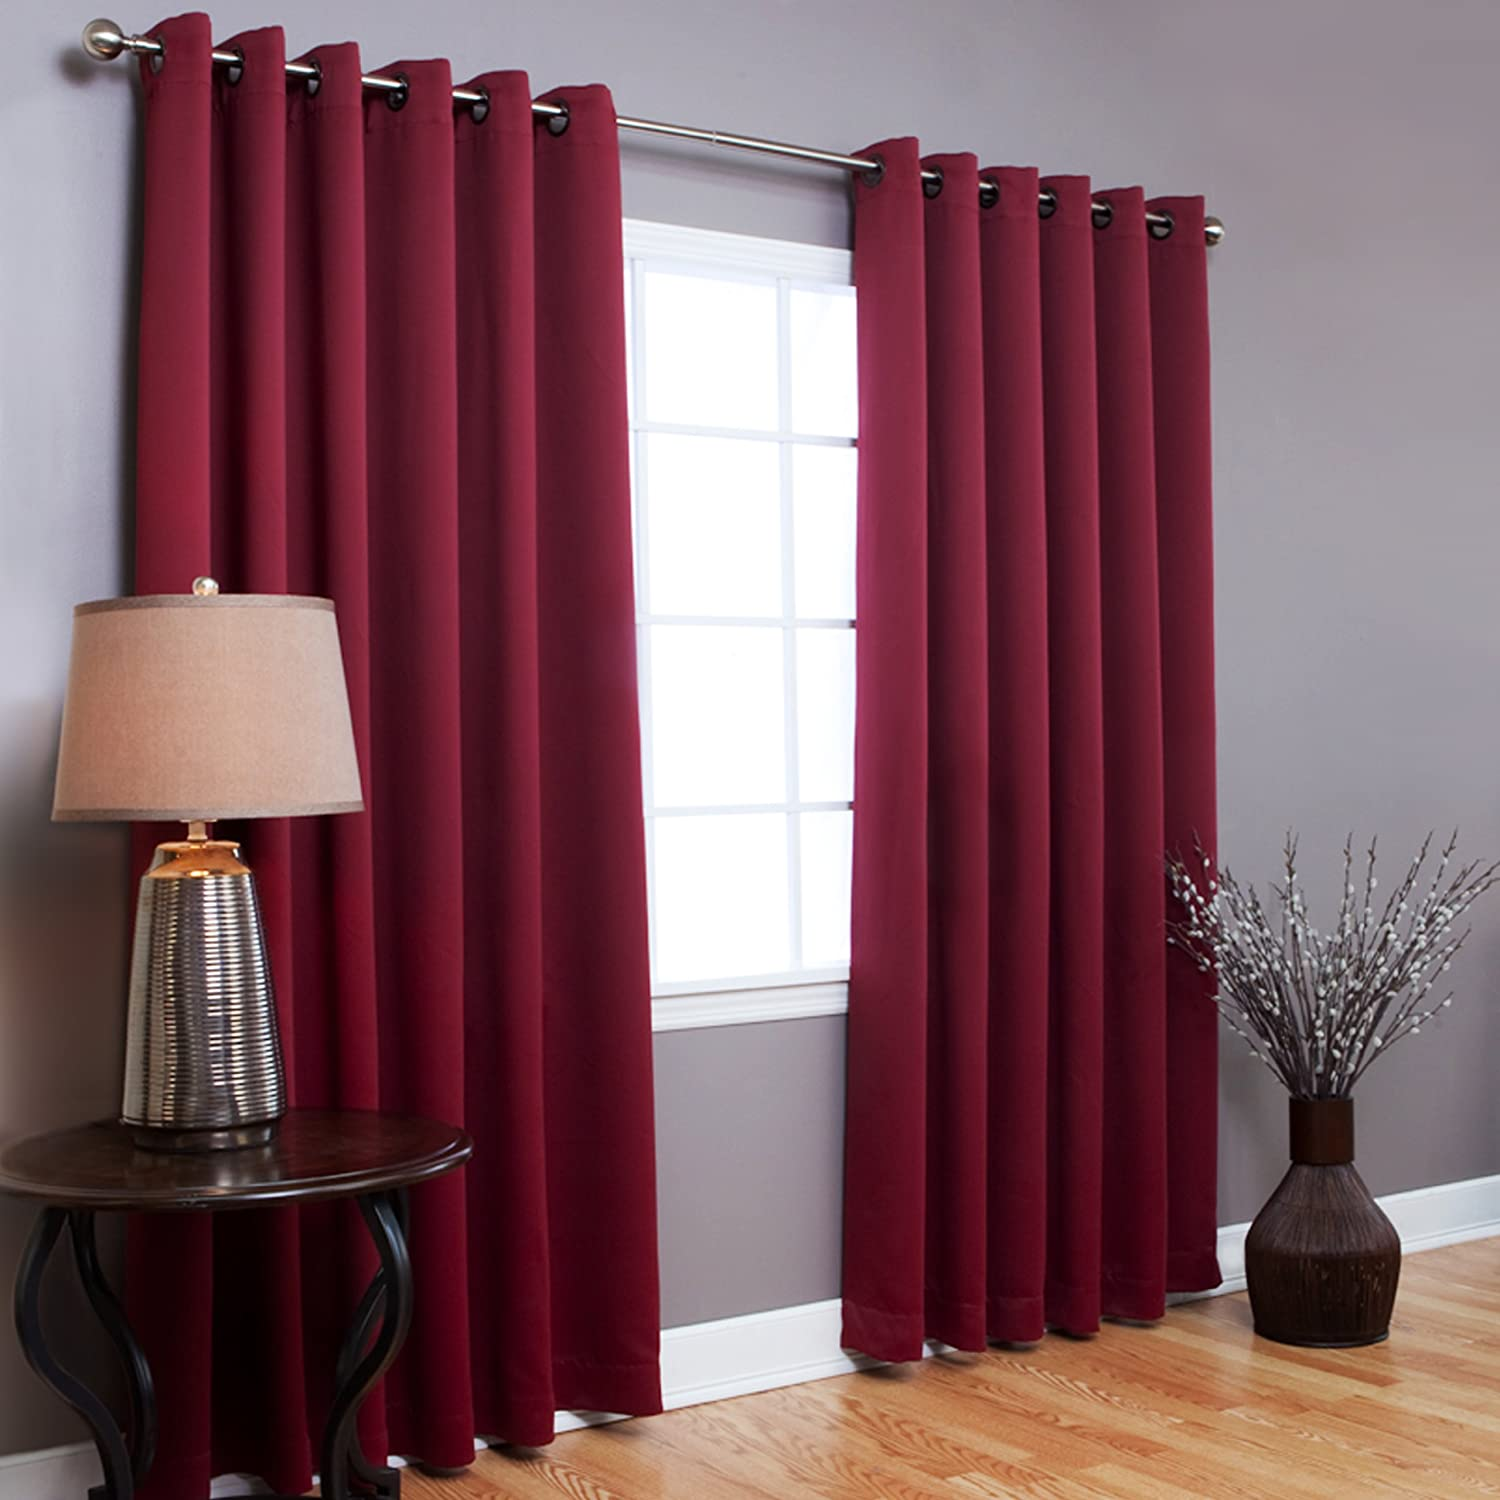 Curtain Ideas For Red Walls Decorate The House With Beautiful Curtains